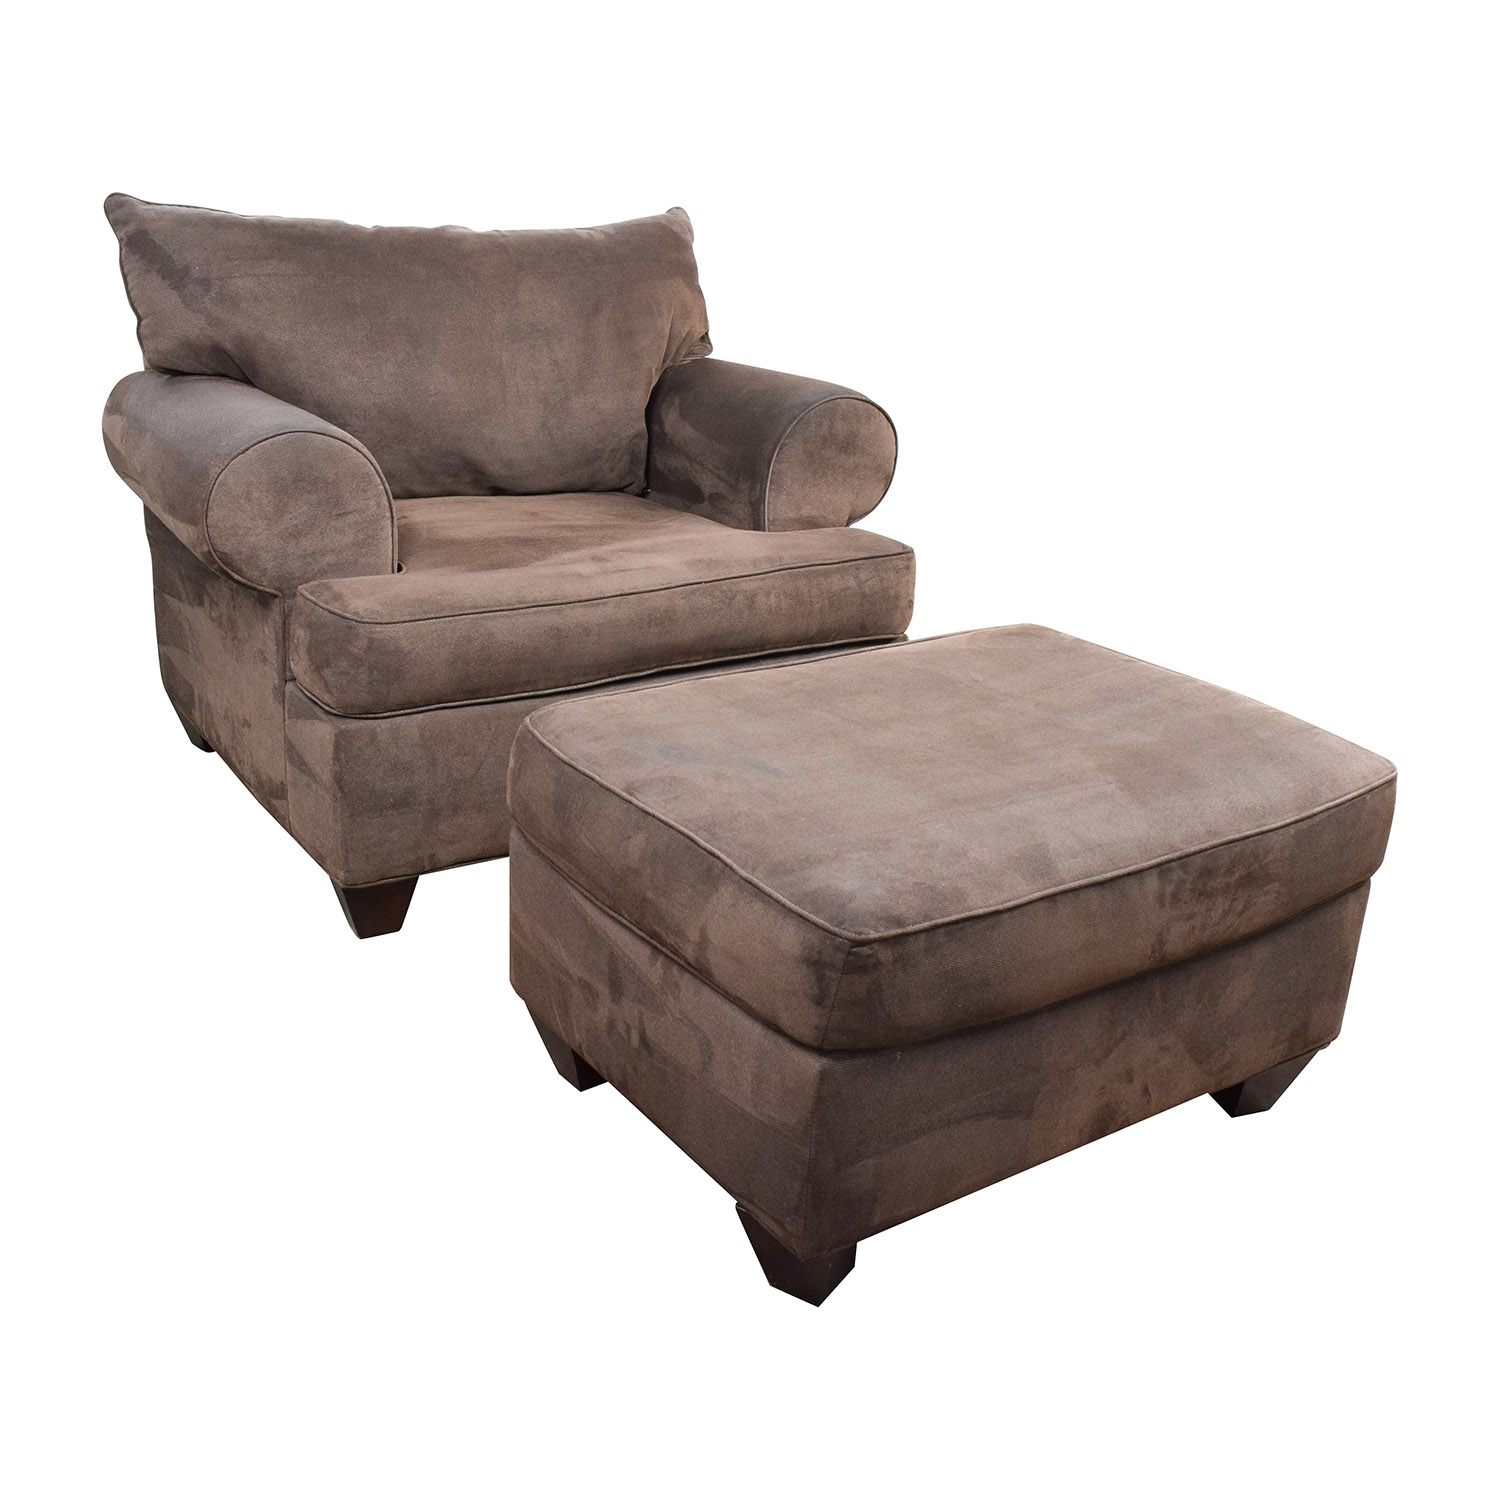 67 Off Dark Brown Sofa Chair With Ottoman Chairs Inside Brown Sofa Chairs (Image 5 of 15)